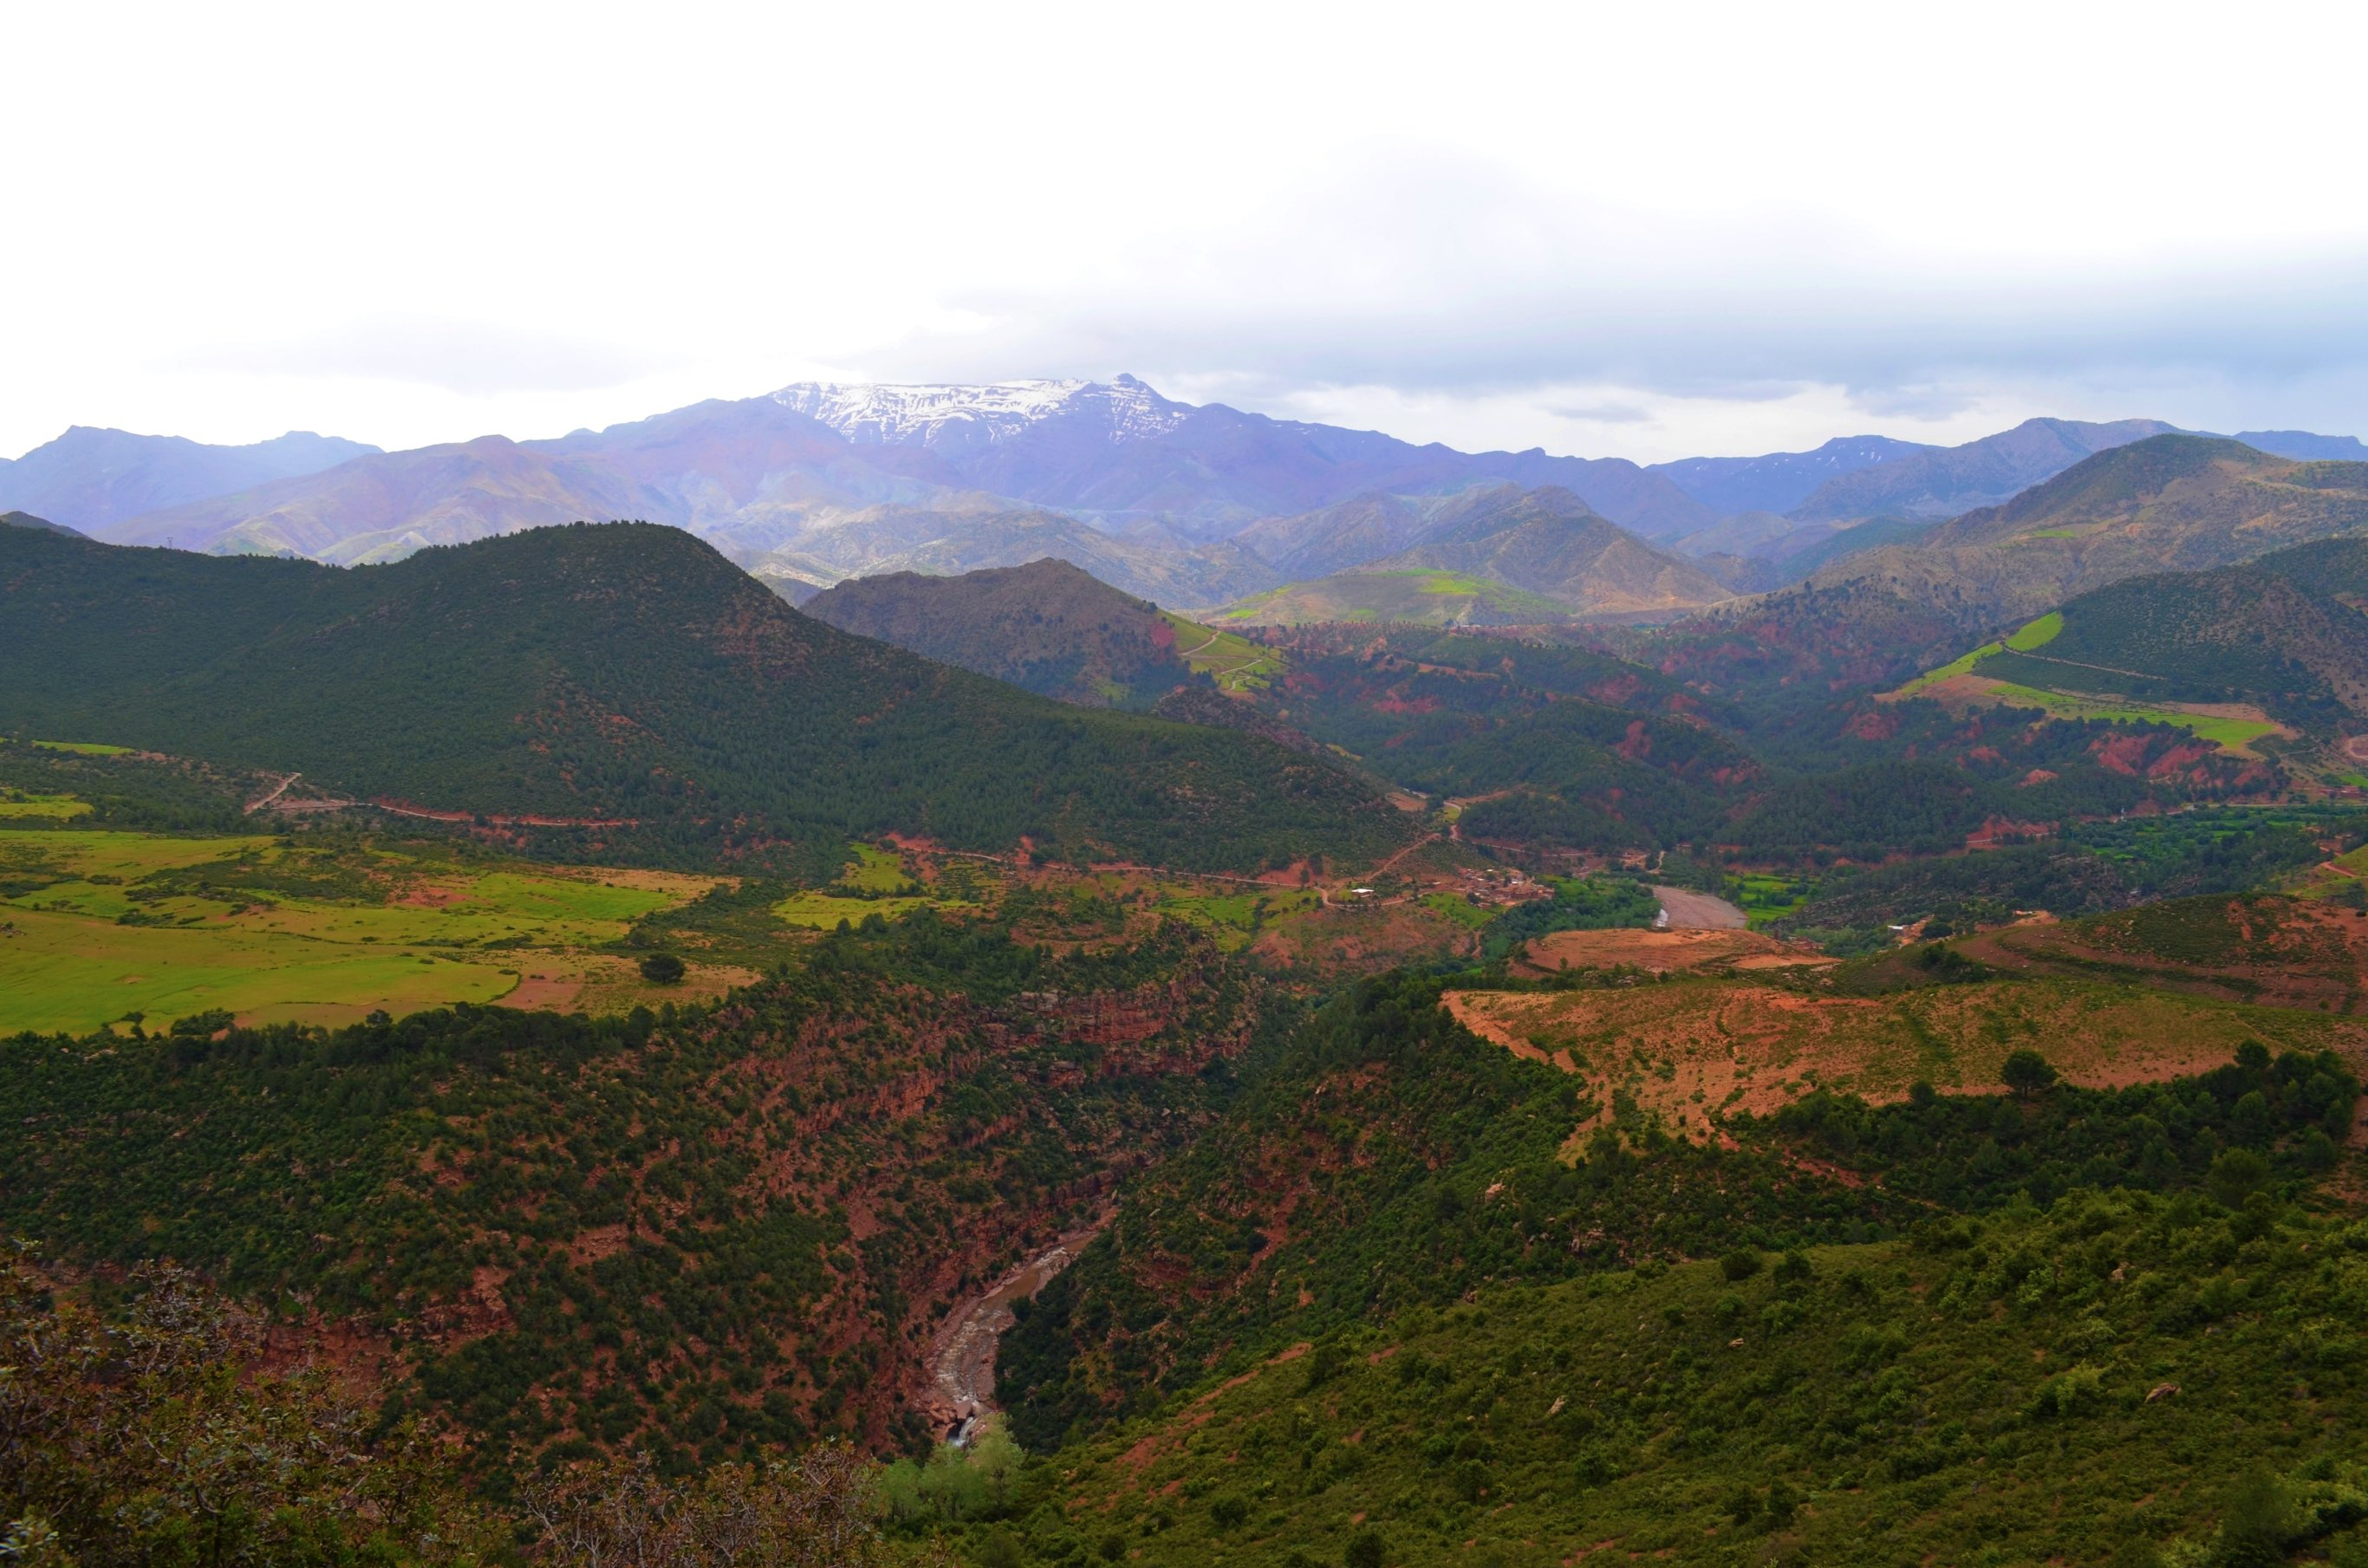 5-Day Trekking in Morocco Atlas Mountains - Morocco Itinerary